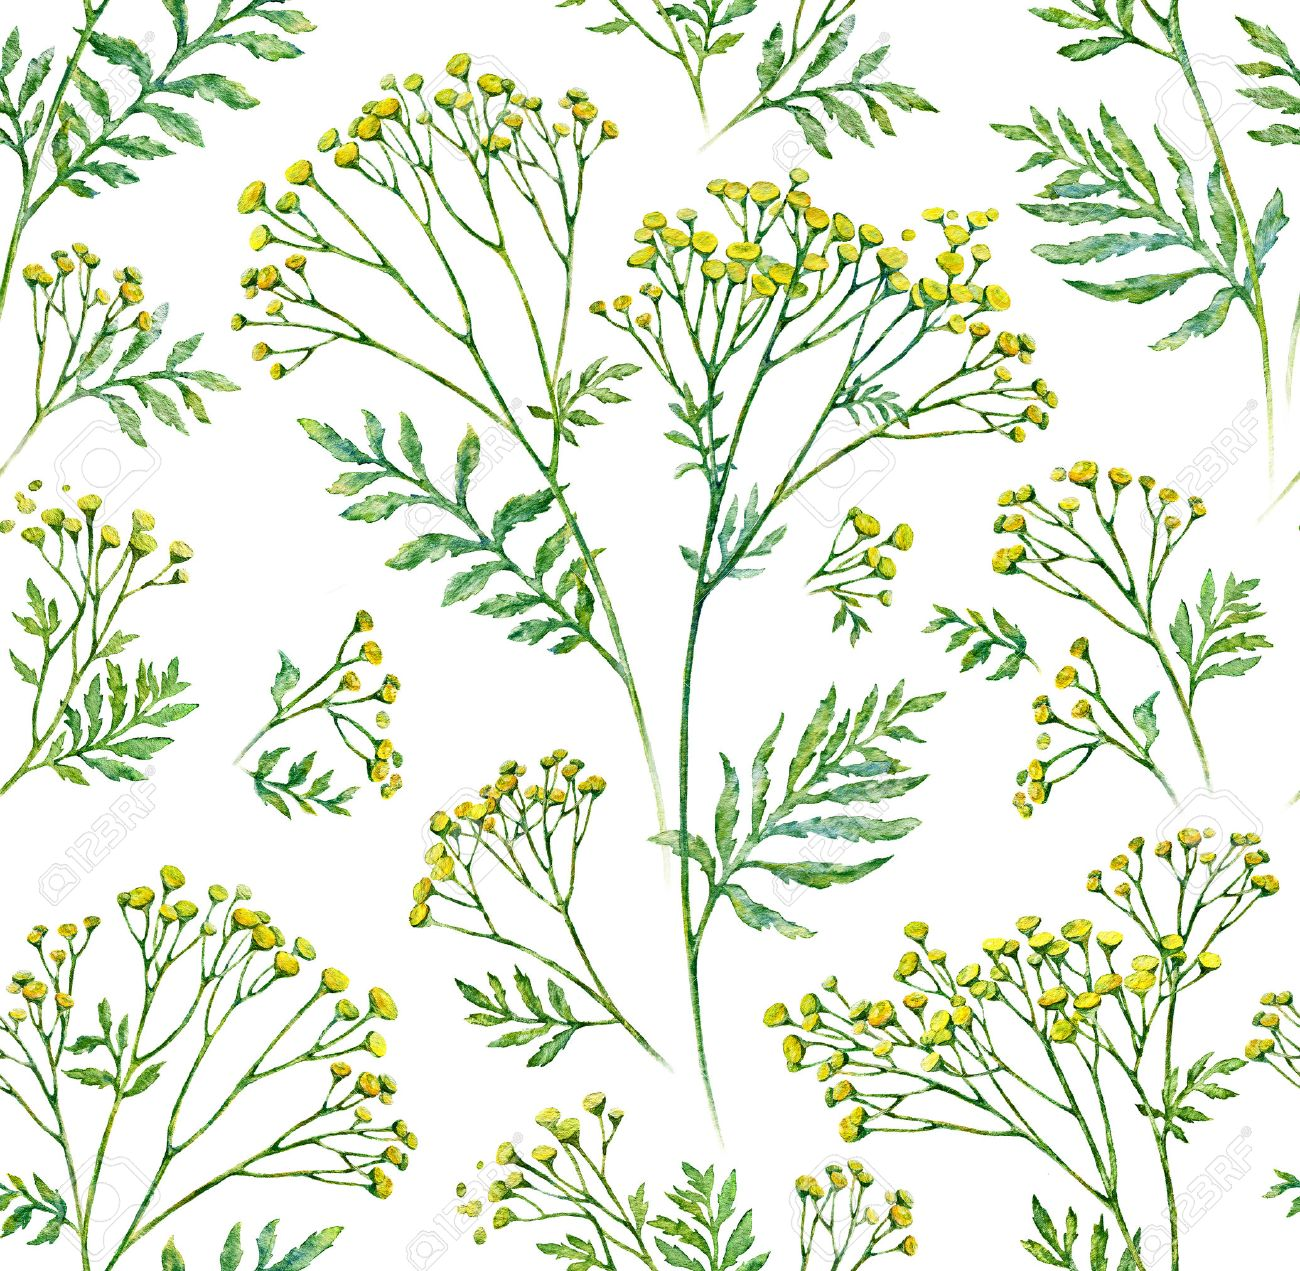 37297012-seamless-flower-with-leaf-pattern-background-botanical-illustration-watercolor-painting-